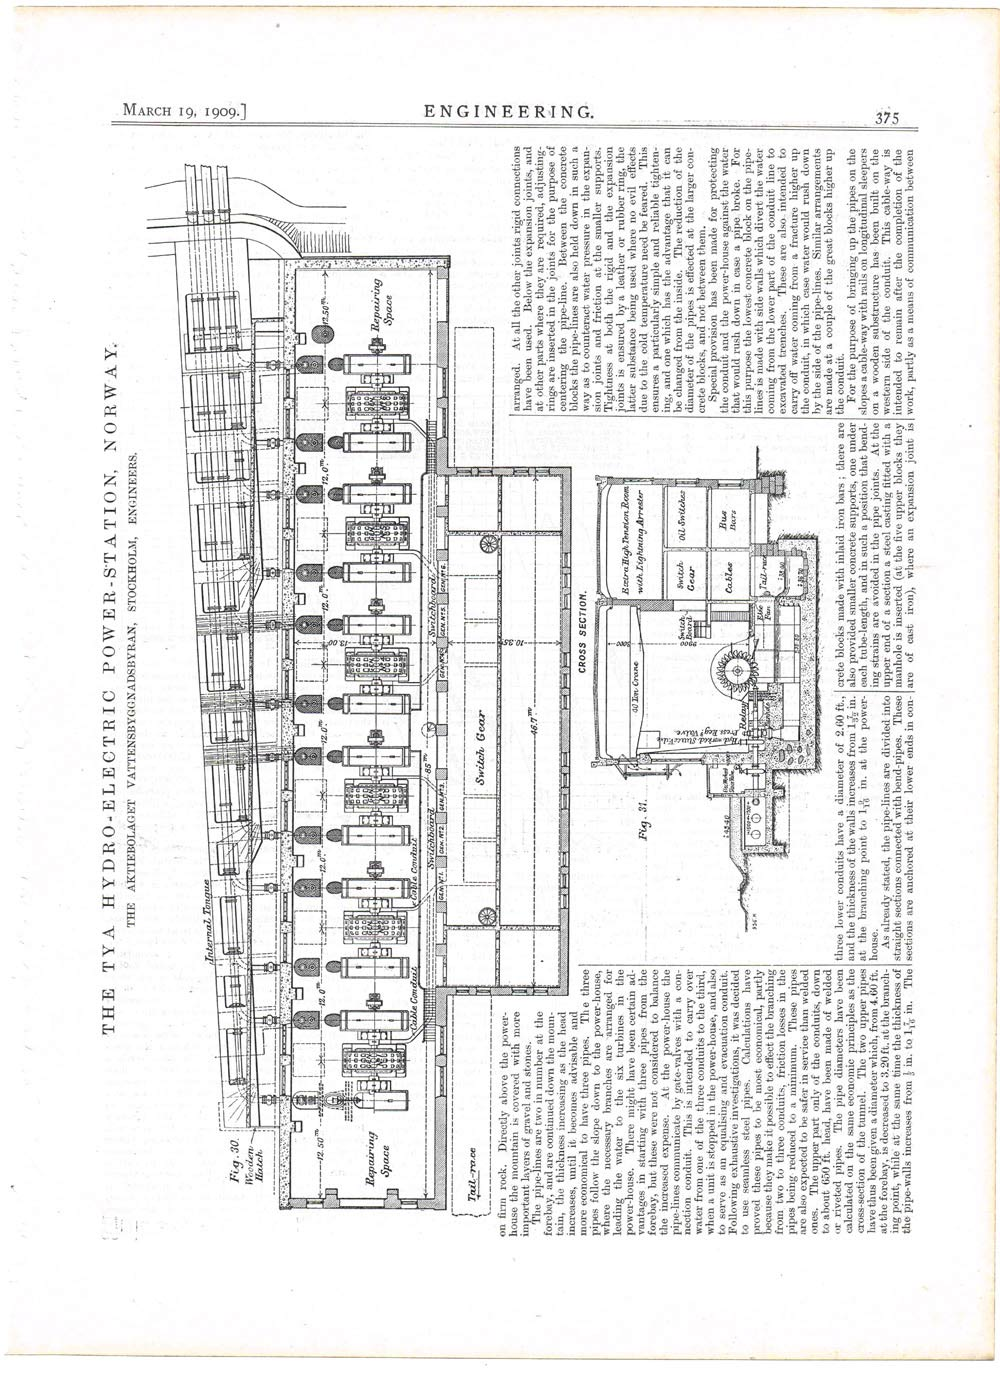 1909 Engineering 2 Antique Prints Tya Hydro Electric Power Station Plant Circuit Diagram